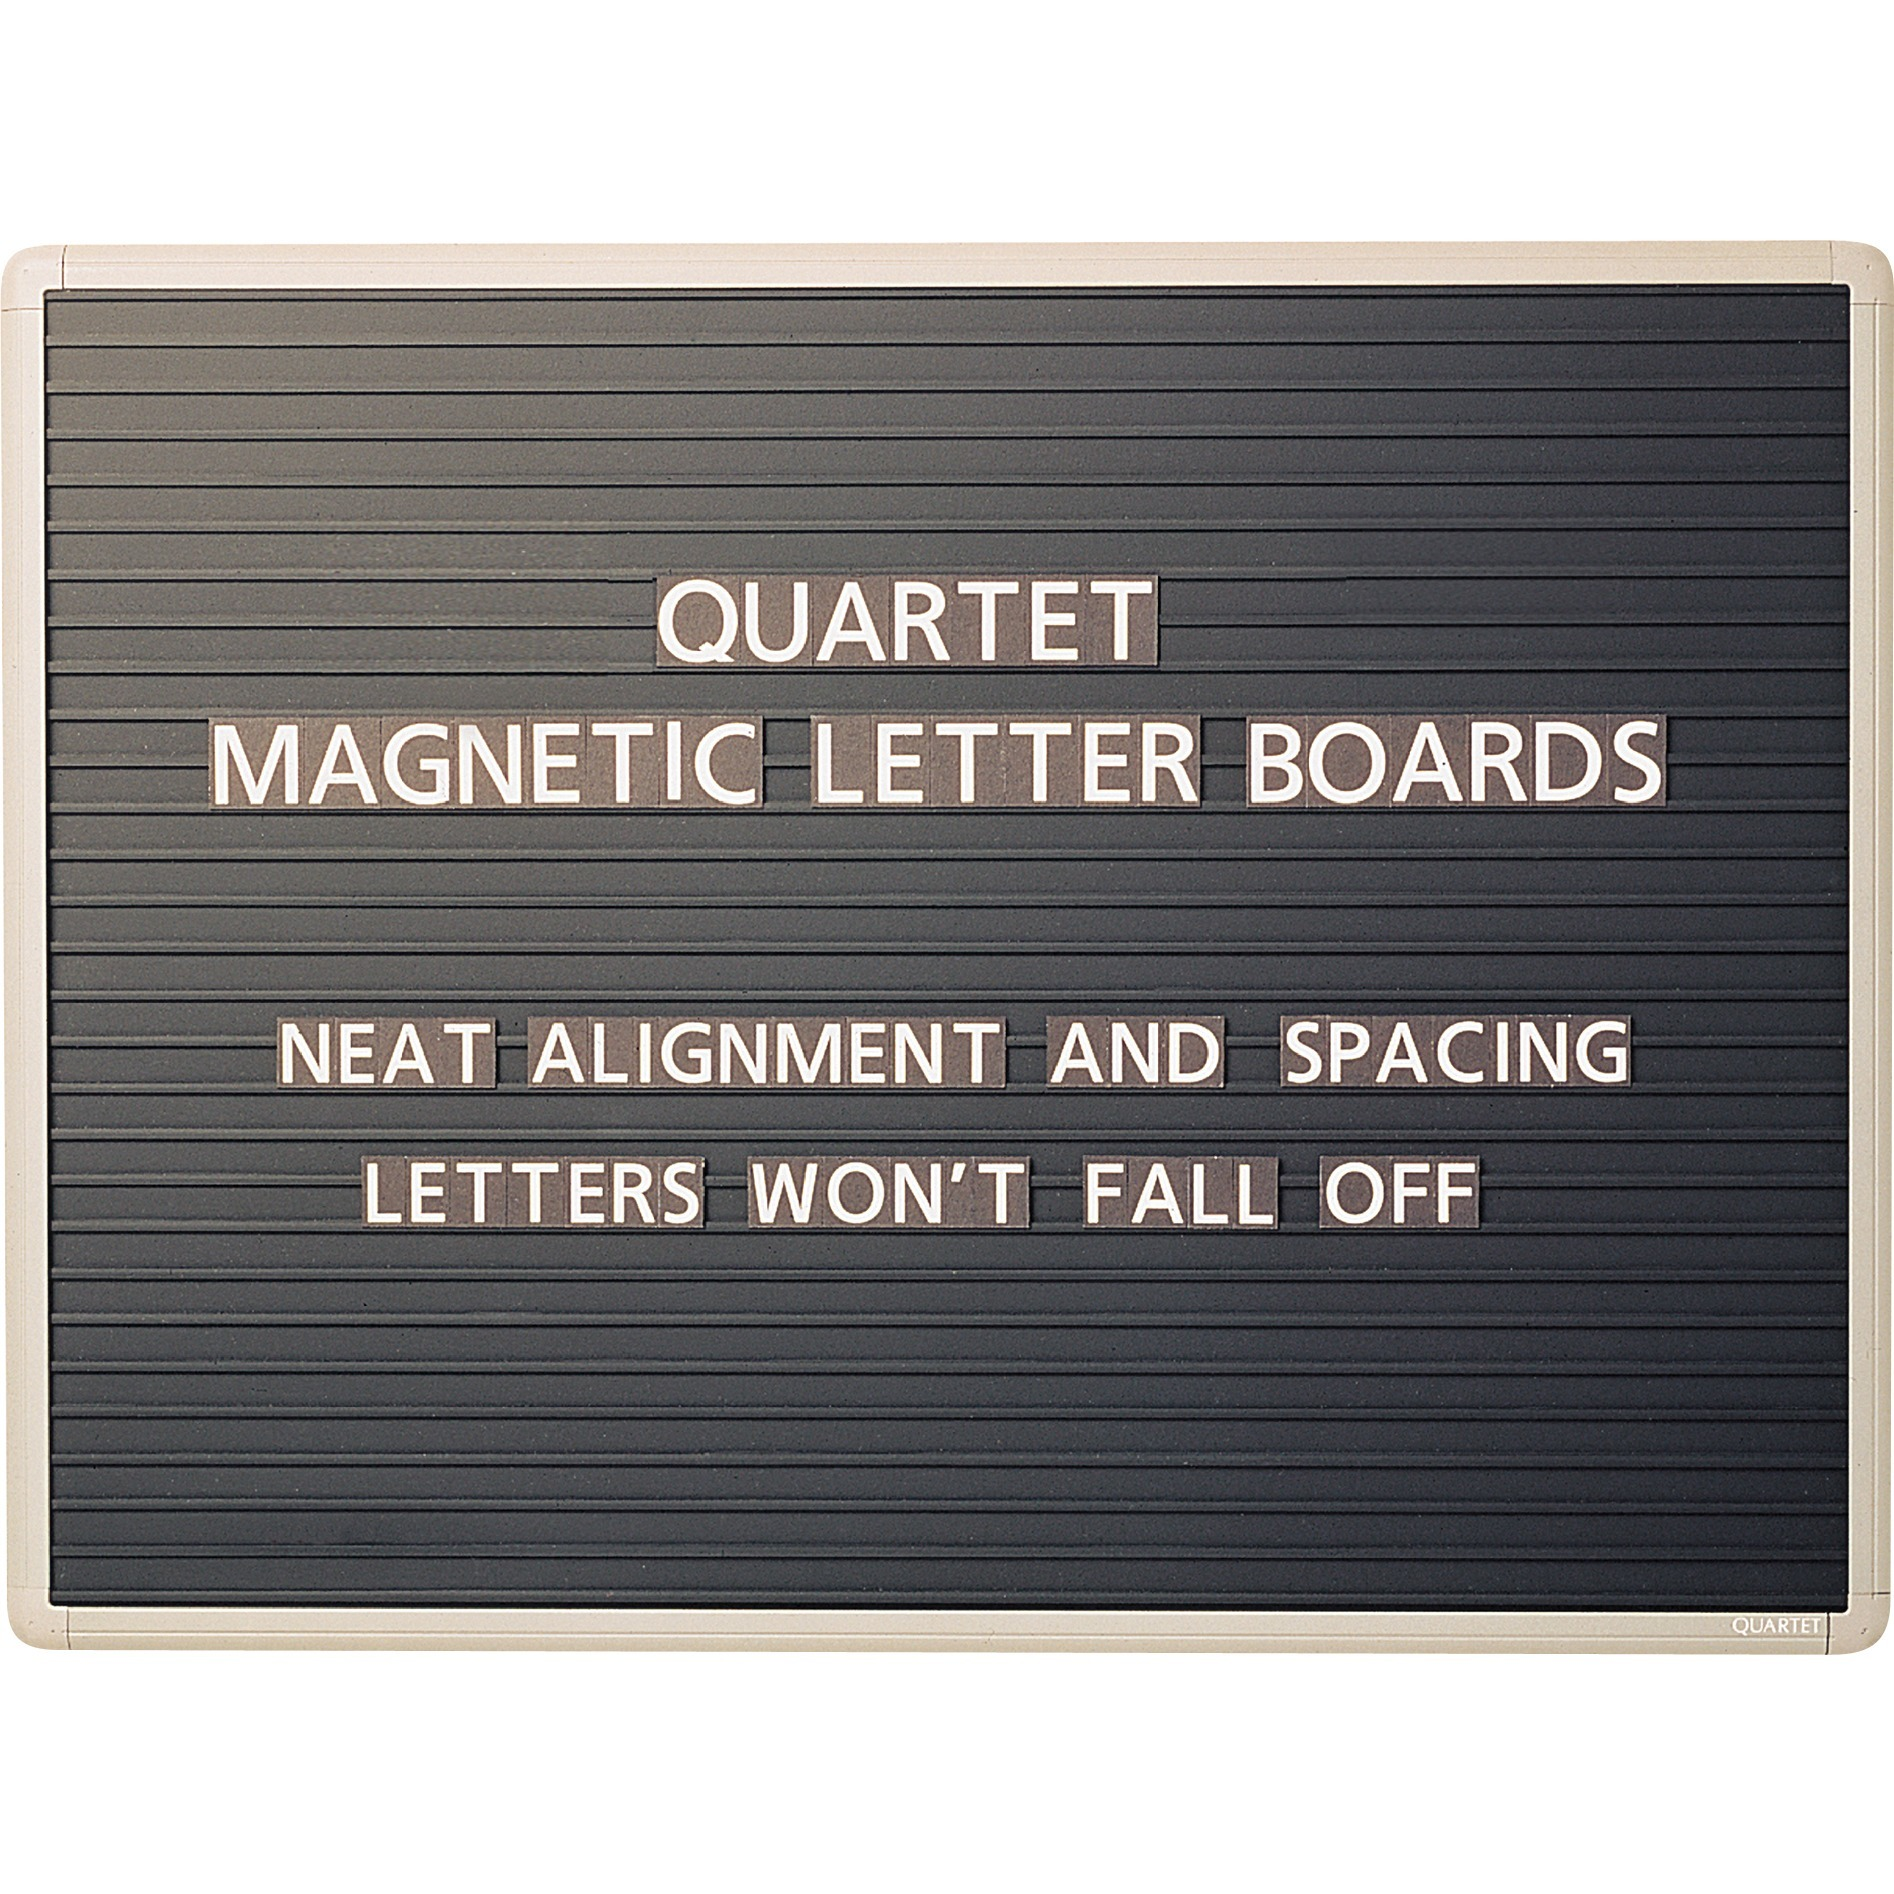 "Quartet Magnetic Letter Board Sign, 24"" x 18"", Horizontal Ridges, Easy Mounting, 1 / Each (Quantity)"